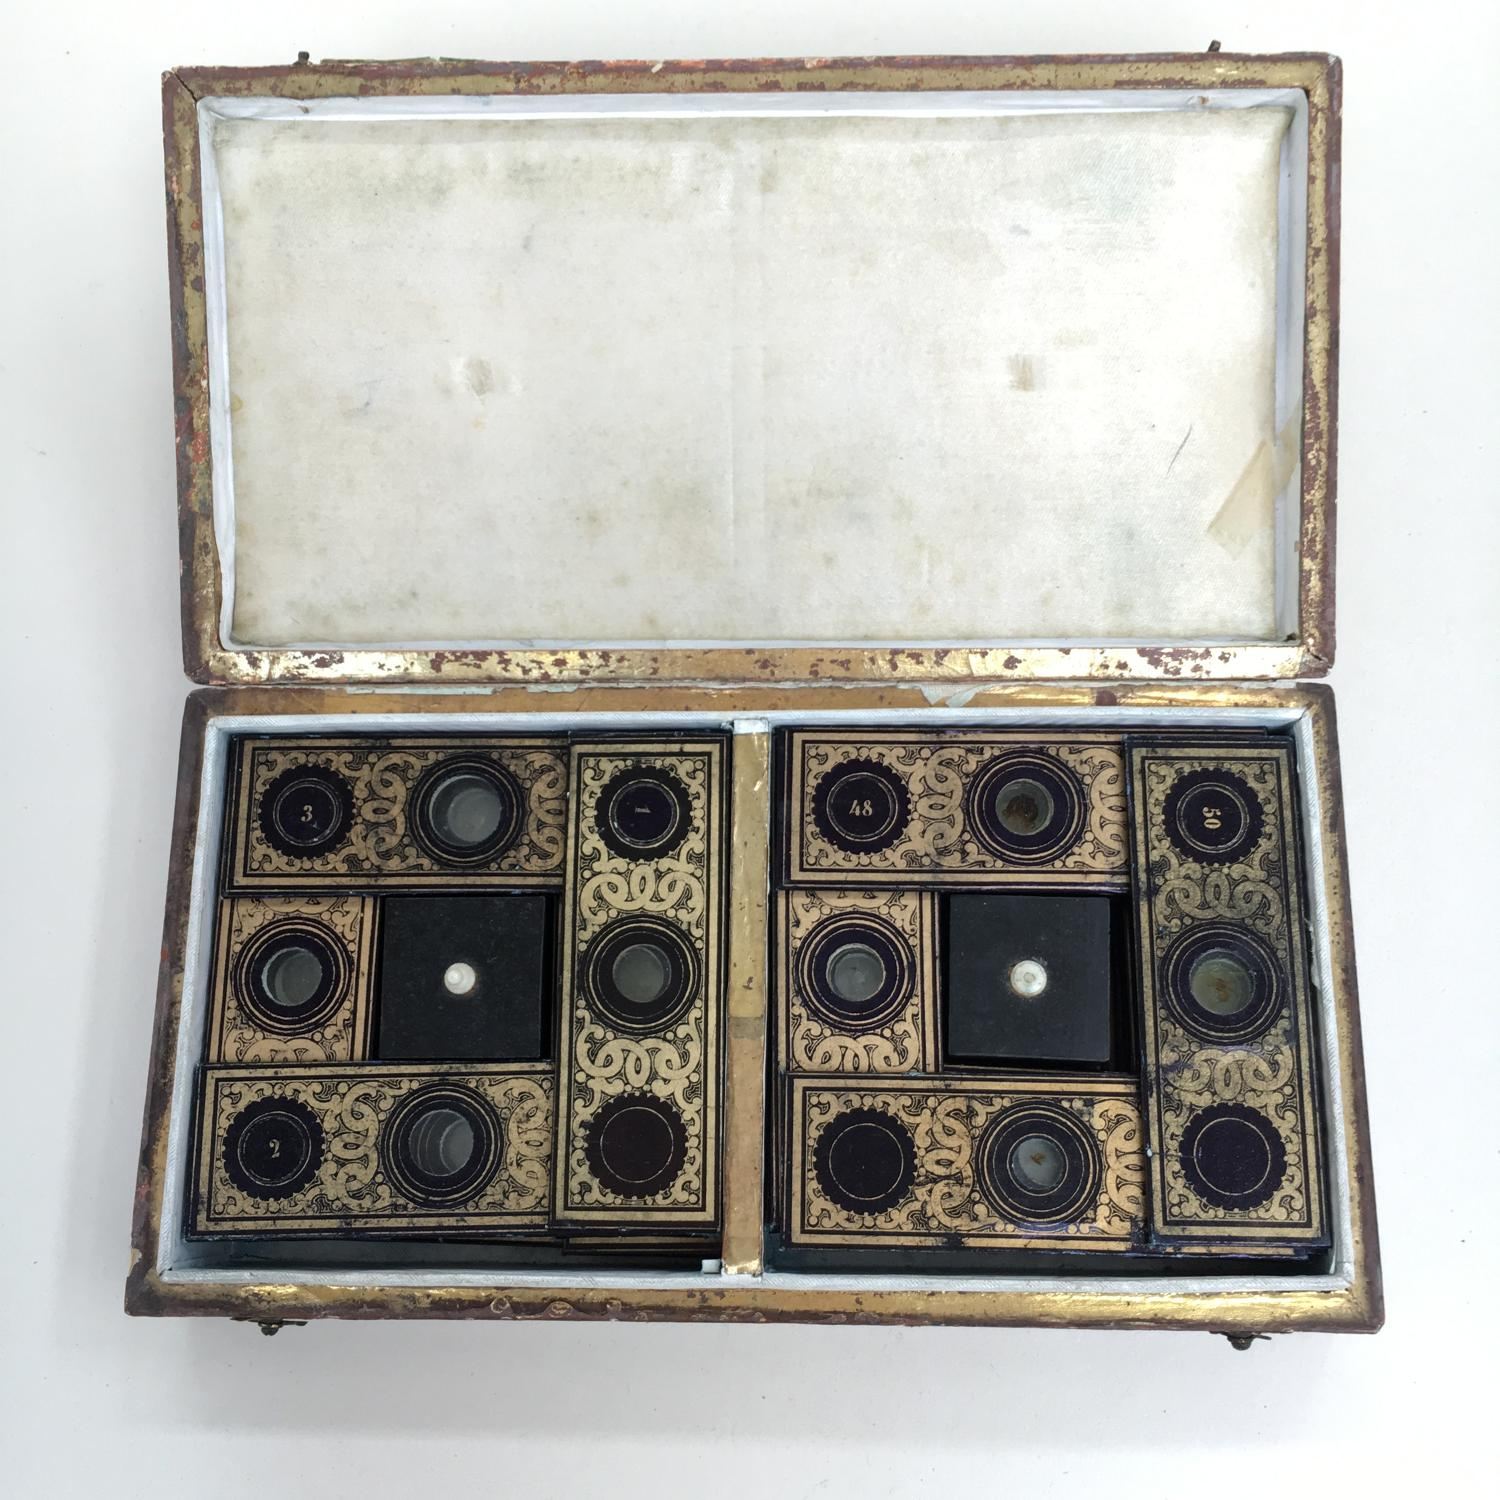 Boxed set of 50 Von Rappard Microscope Slides C1850